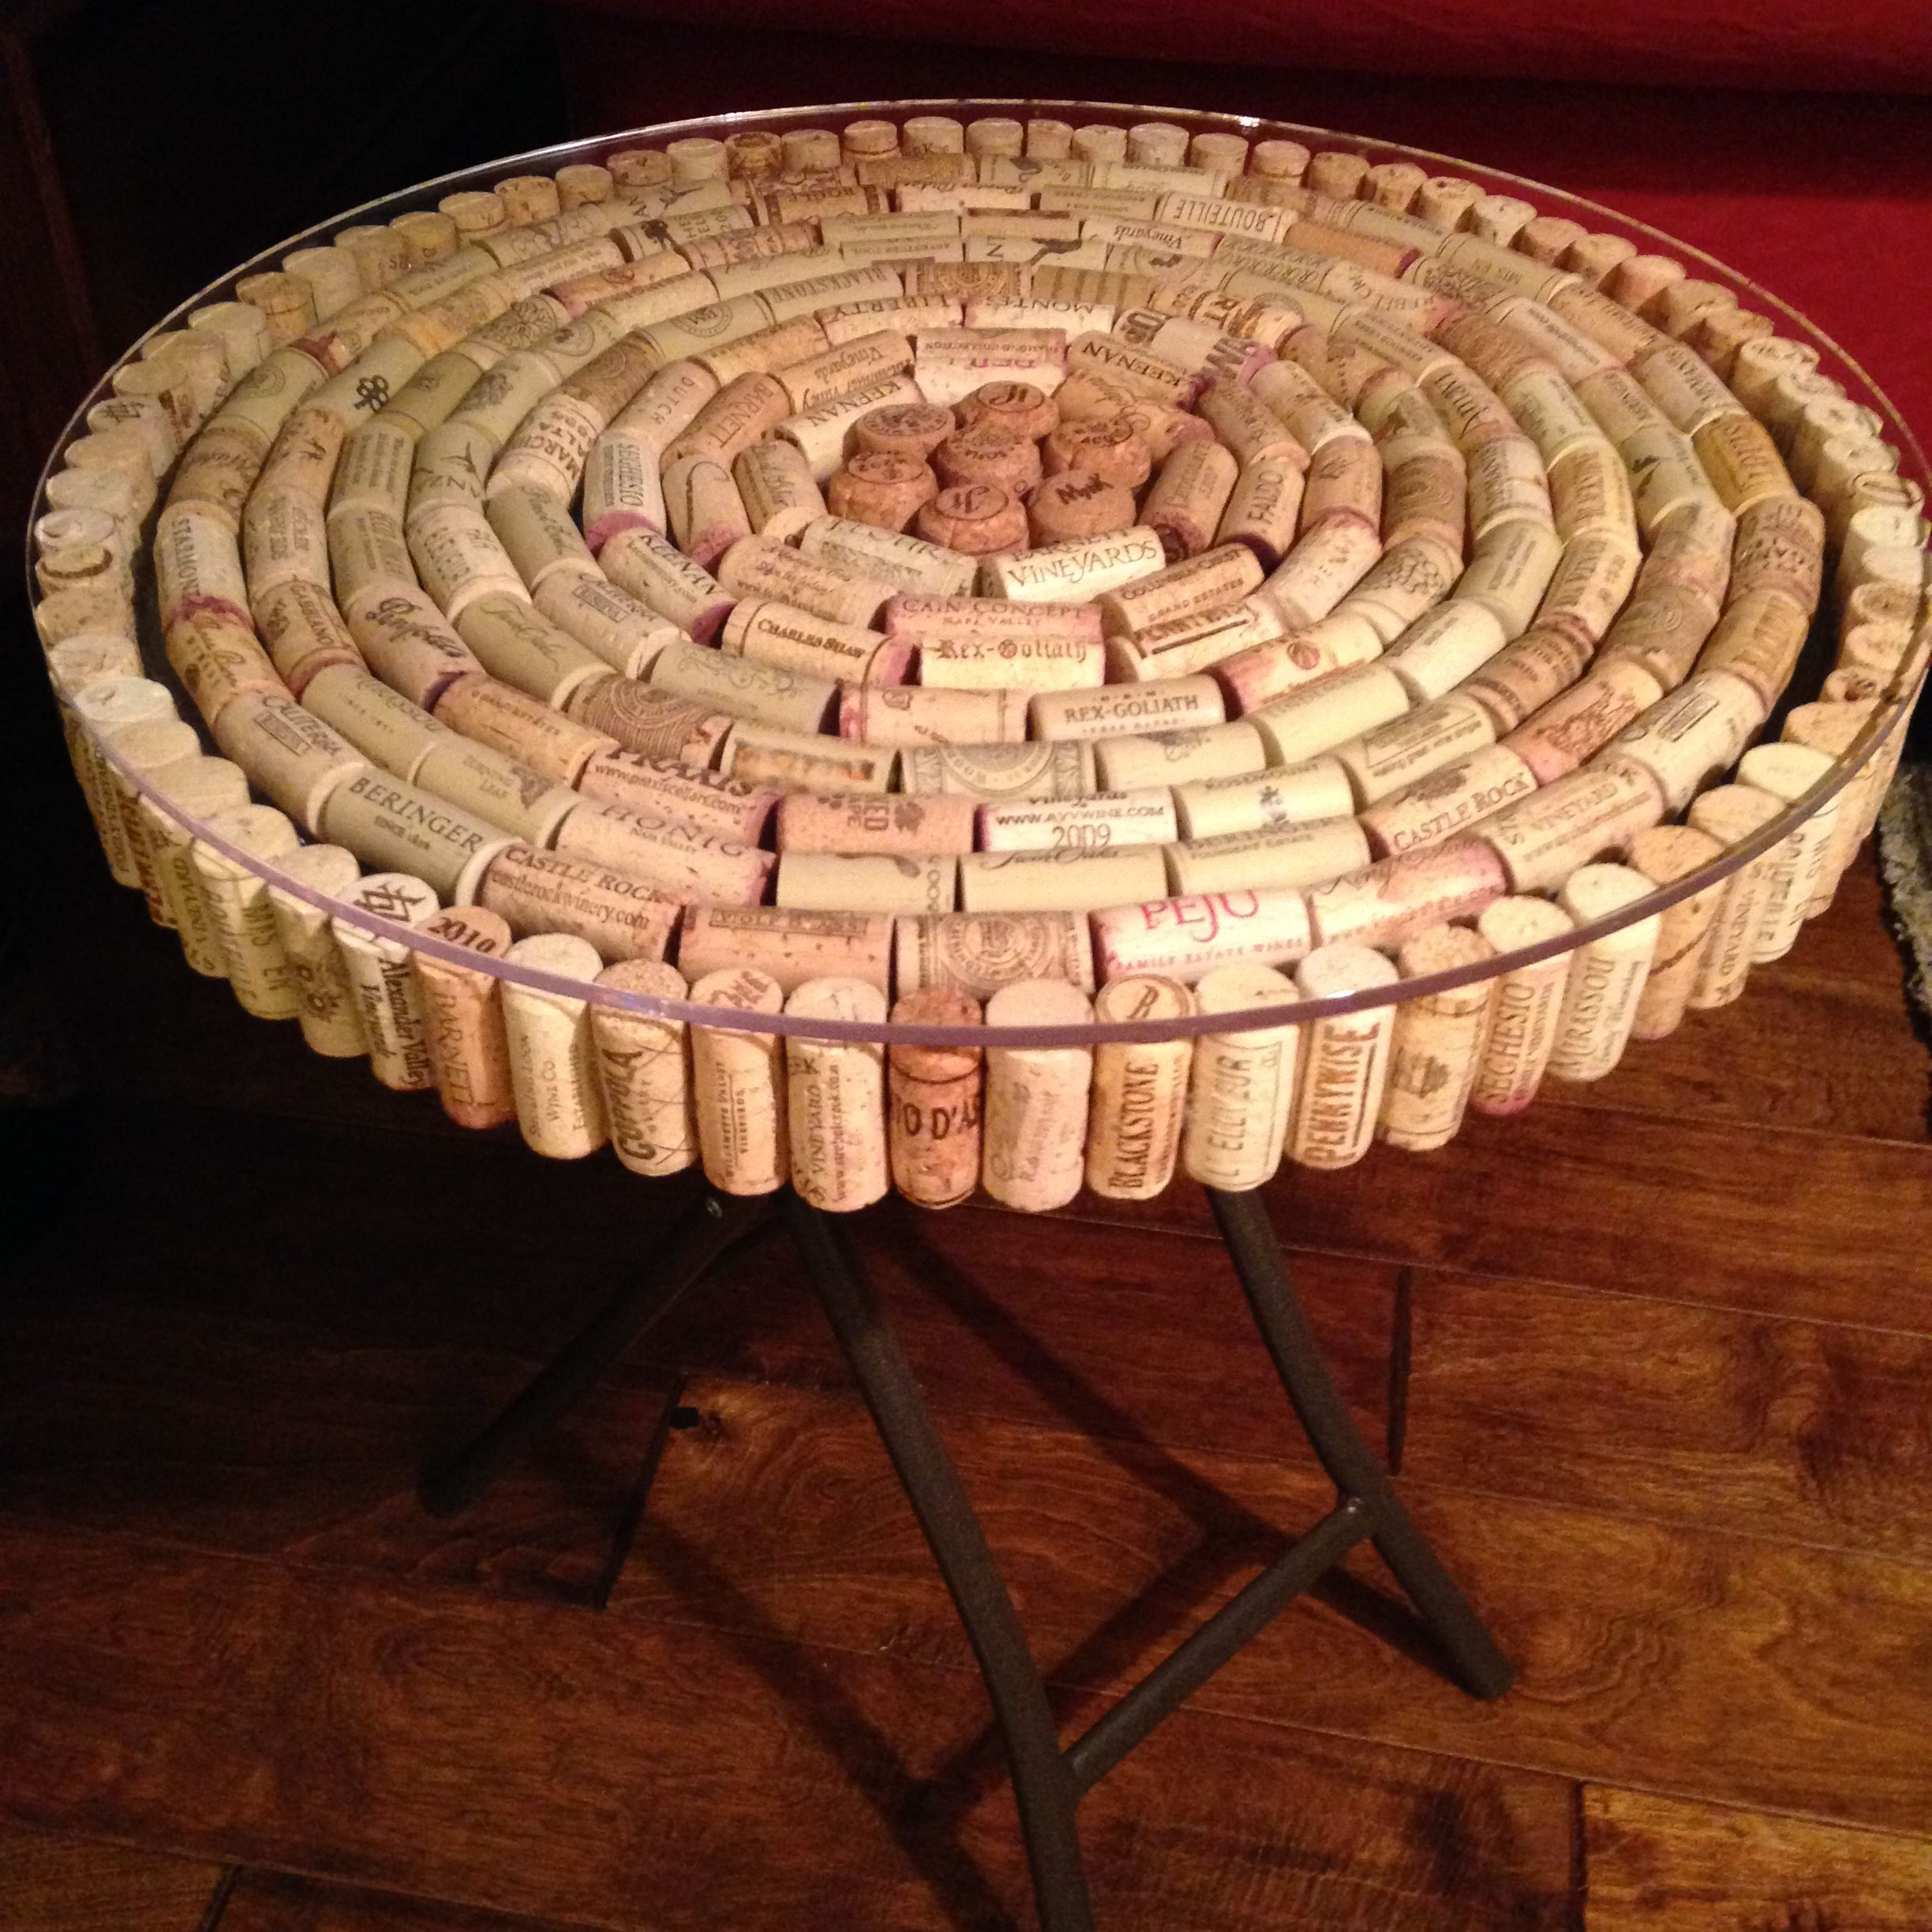 How To Make A Wine Cork Table Home Design & Architecture Cilif